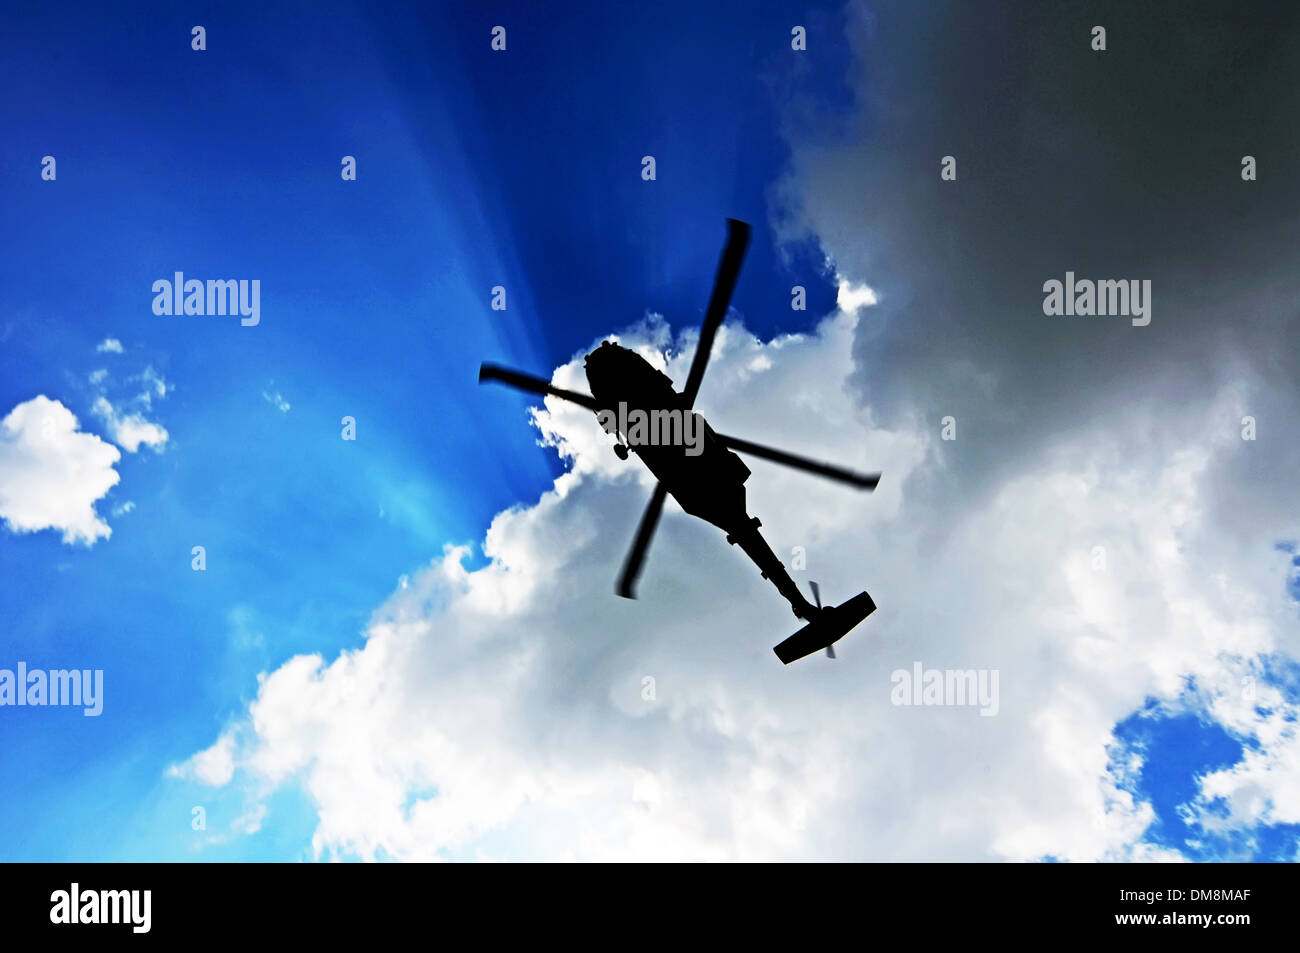 Helicopter Silhouette against clouds - Stock Image